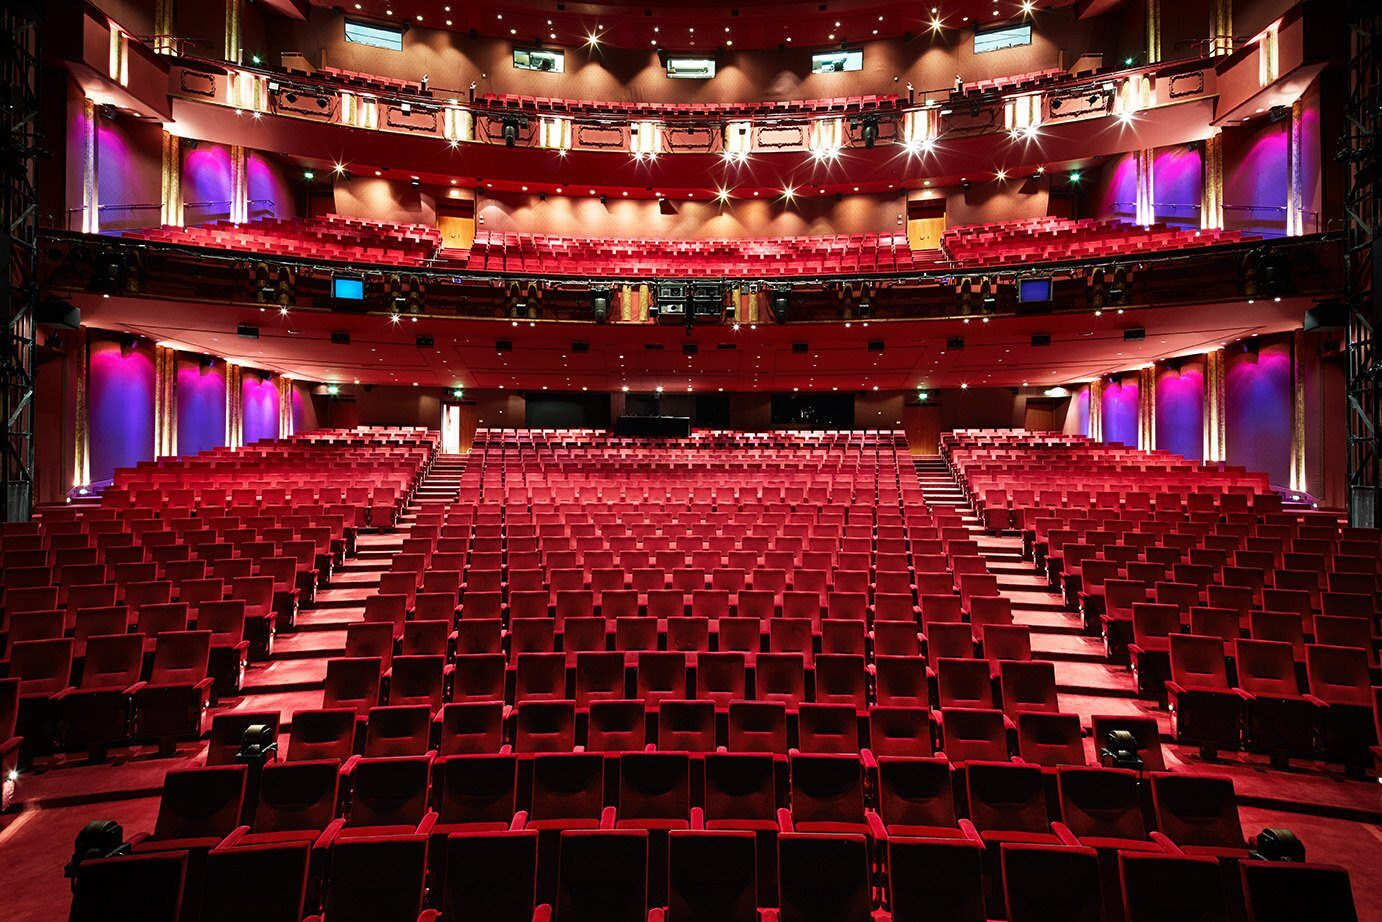 The interior view of a theater that is full of empty seats as viewed from the stage looking outwards.